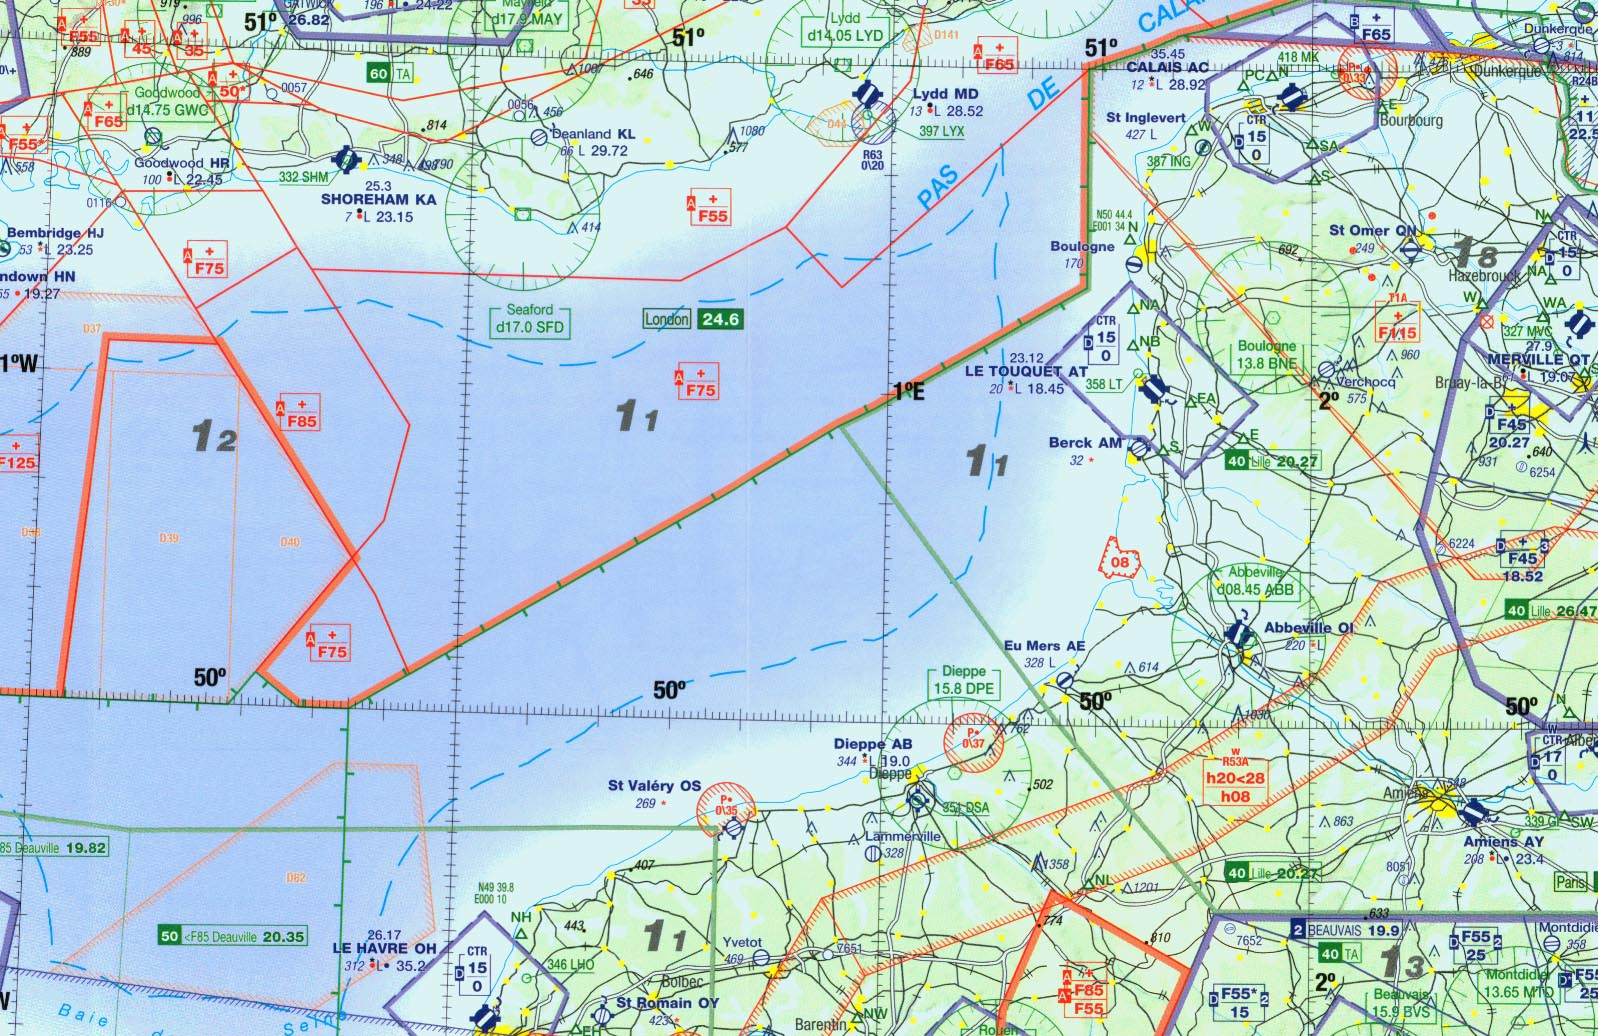 Operational Tips for VFR and IFR in Europe